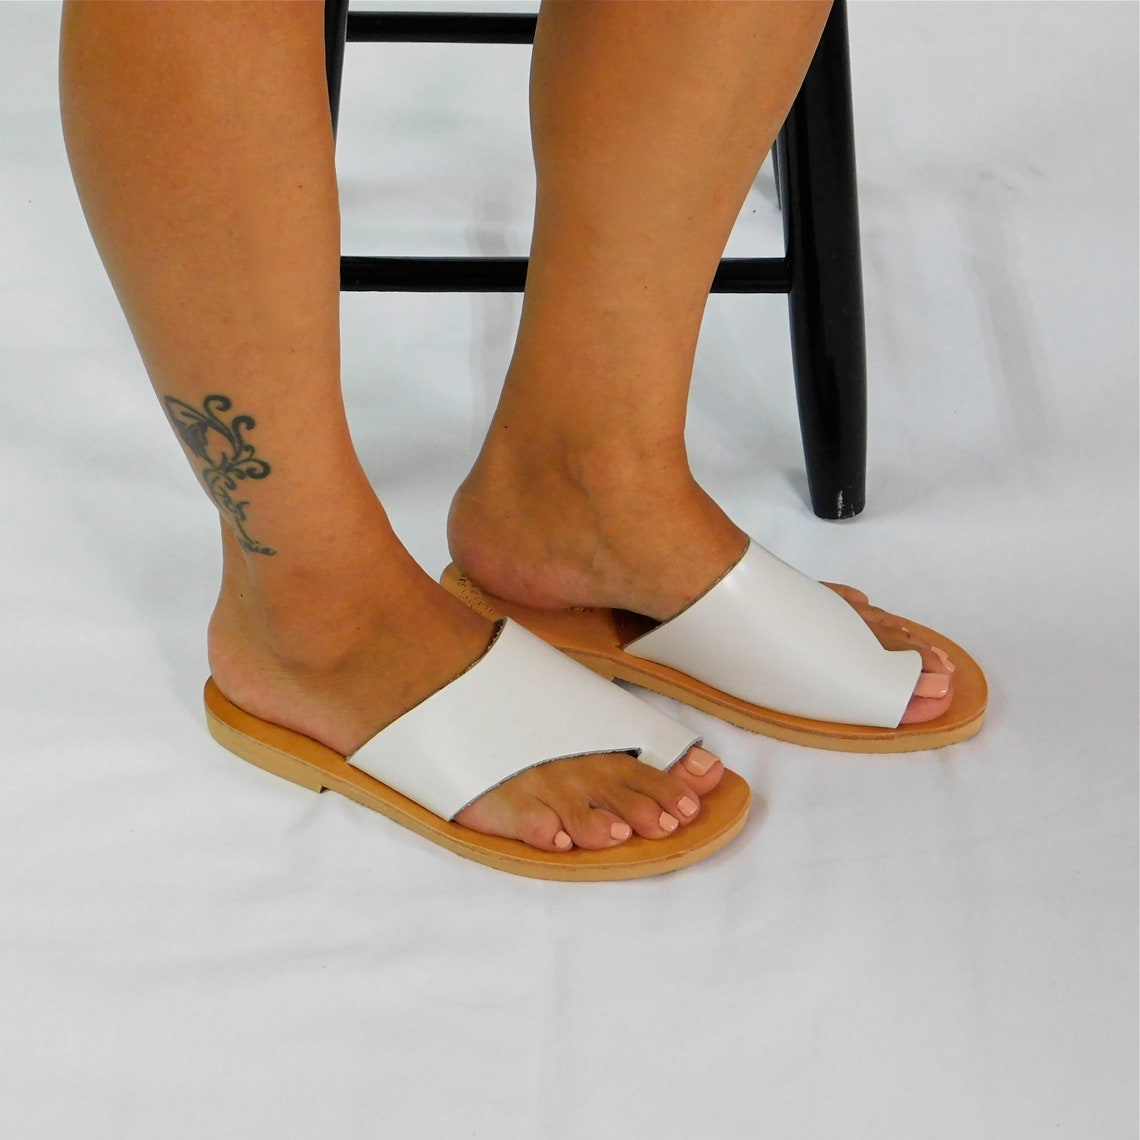 White leather sandals, Greek sandals, Leather sandals, Leather flip flops, Leather flats, Summer sandals, Beach sandals, Sandals for women